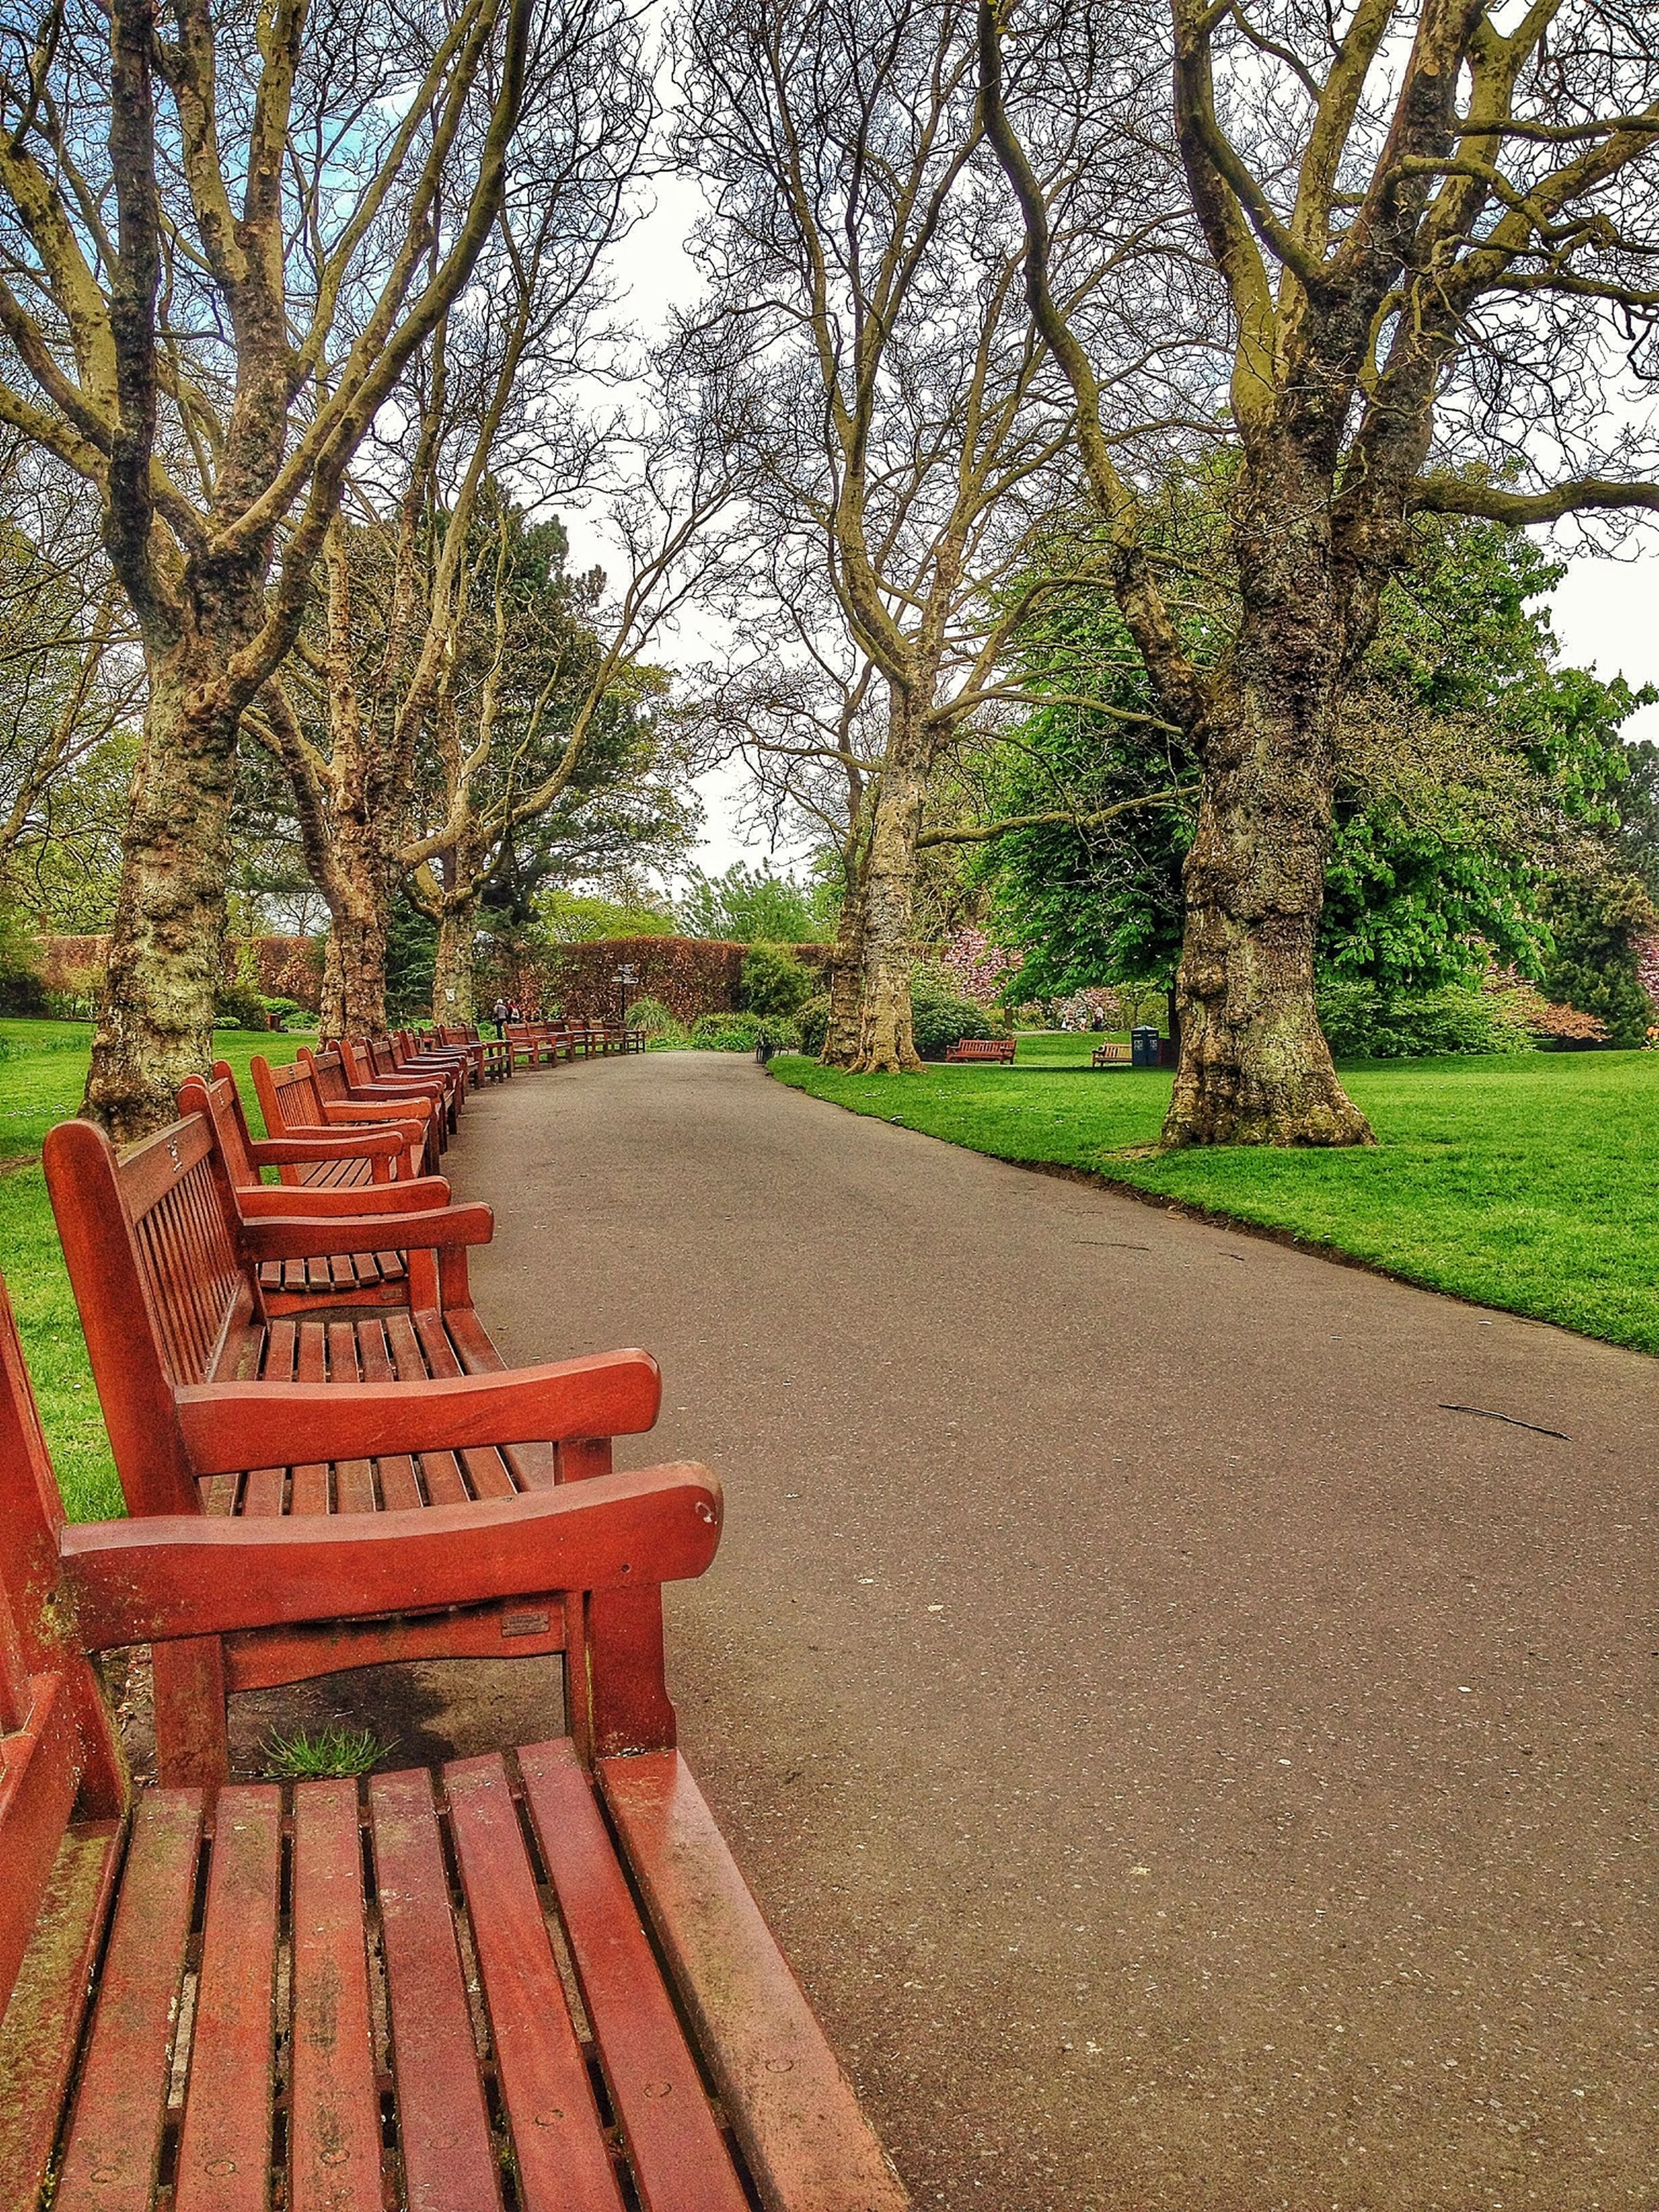 tree, park - man made space, tranquility, the way forward, footpath, tranquil scene, growth, nature, shadow, bench, sunlight, park, steps, empty, green color, grass, walkway, scenics, beauty in nature, day